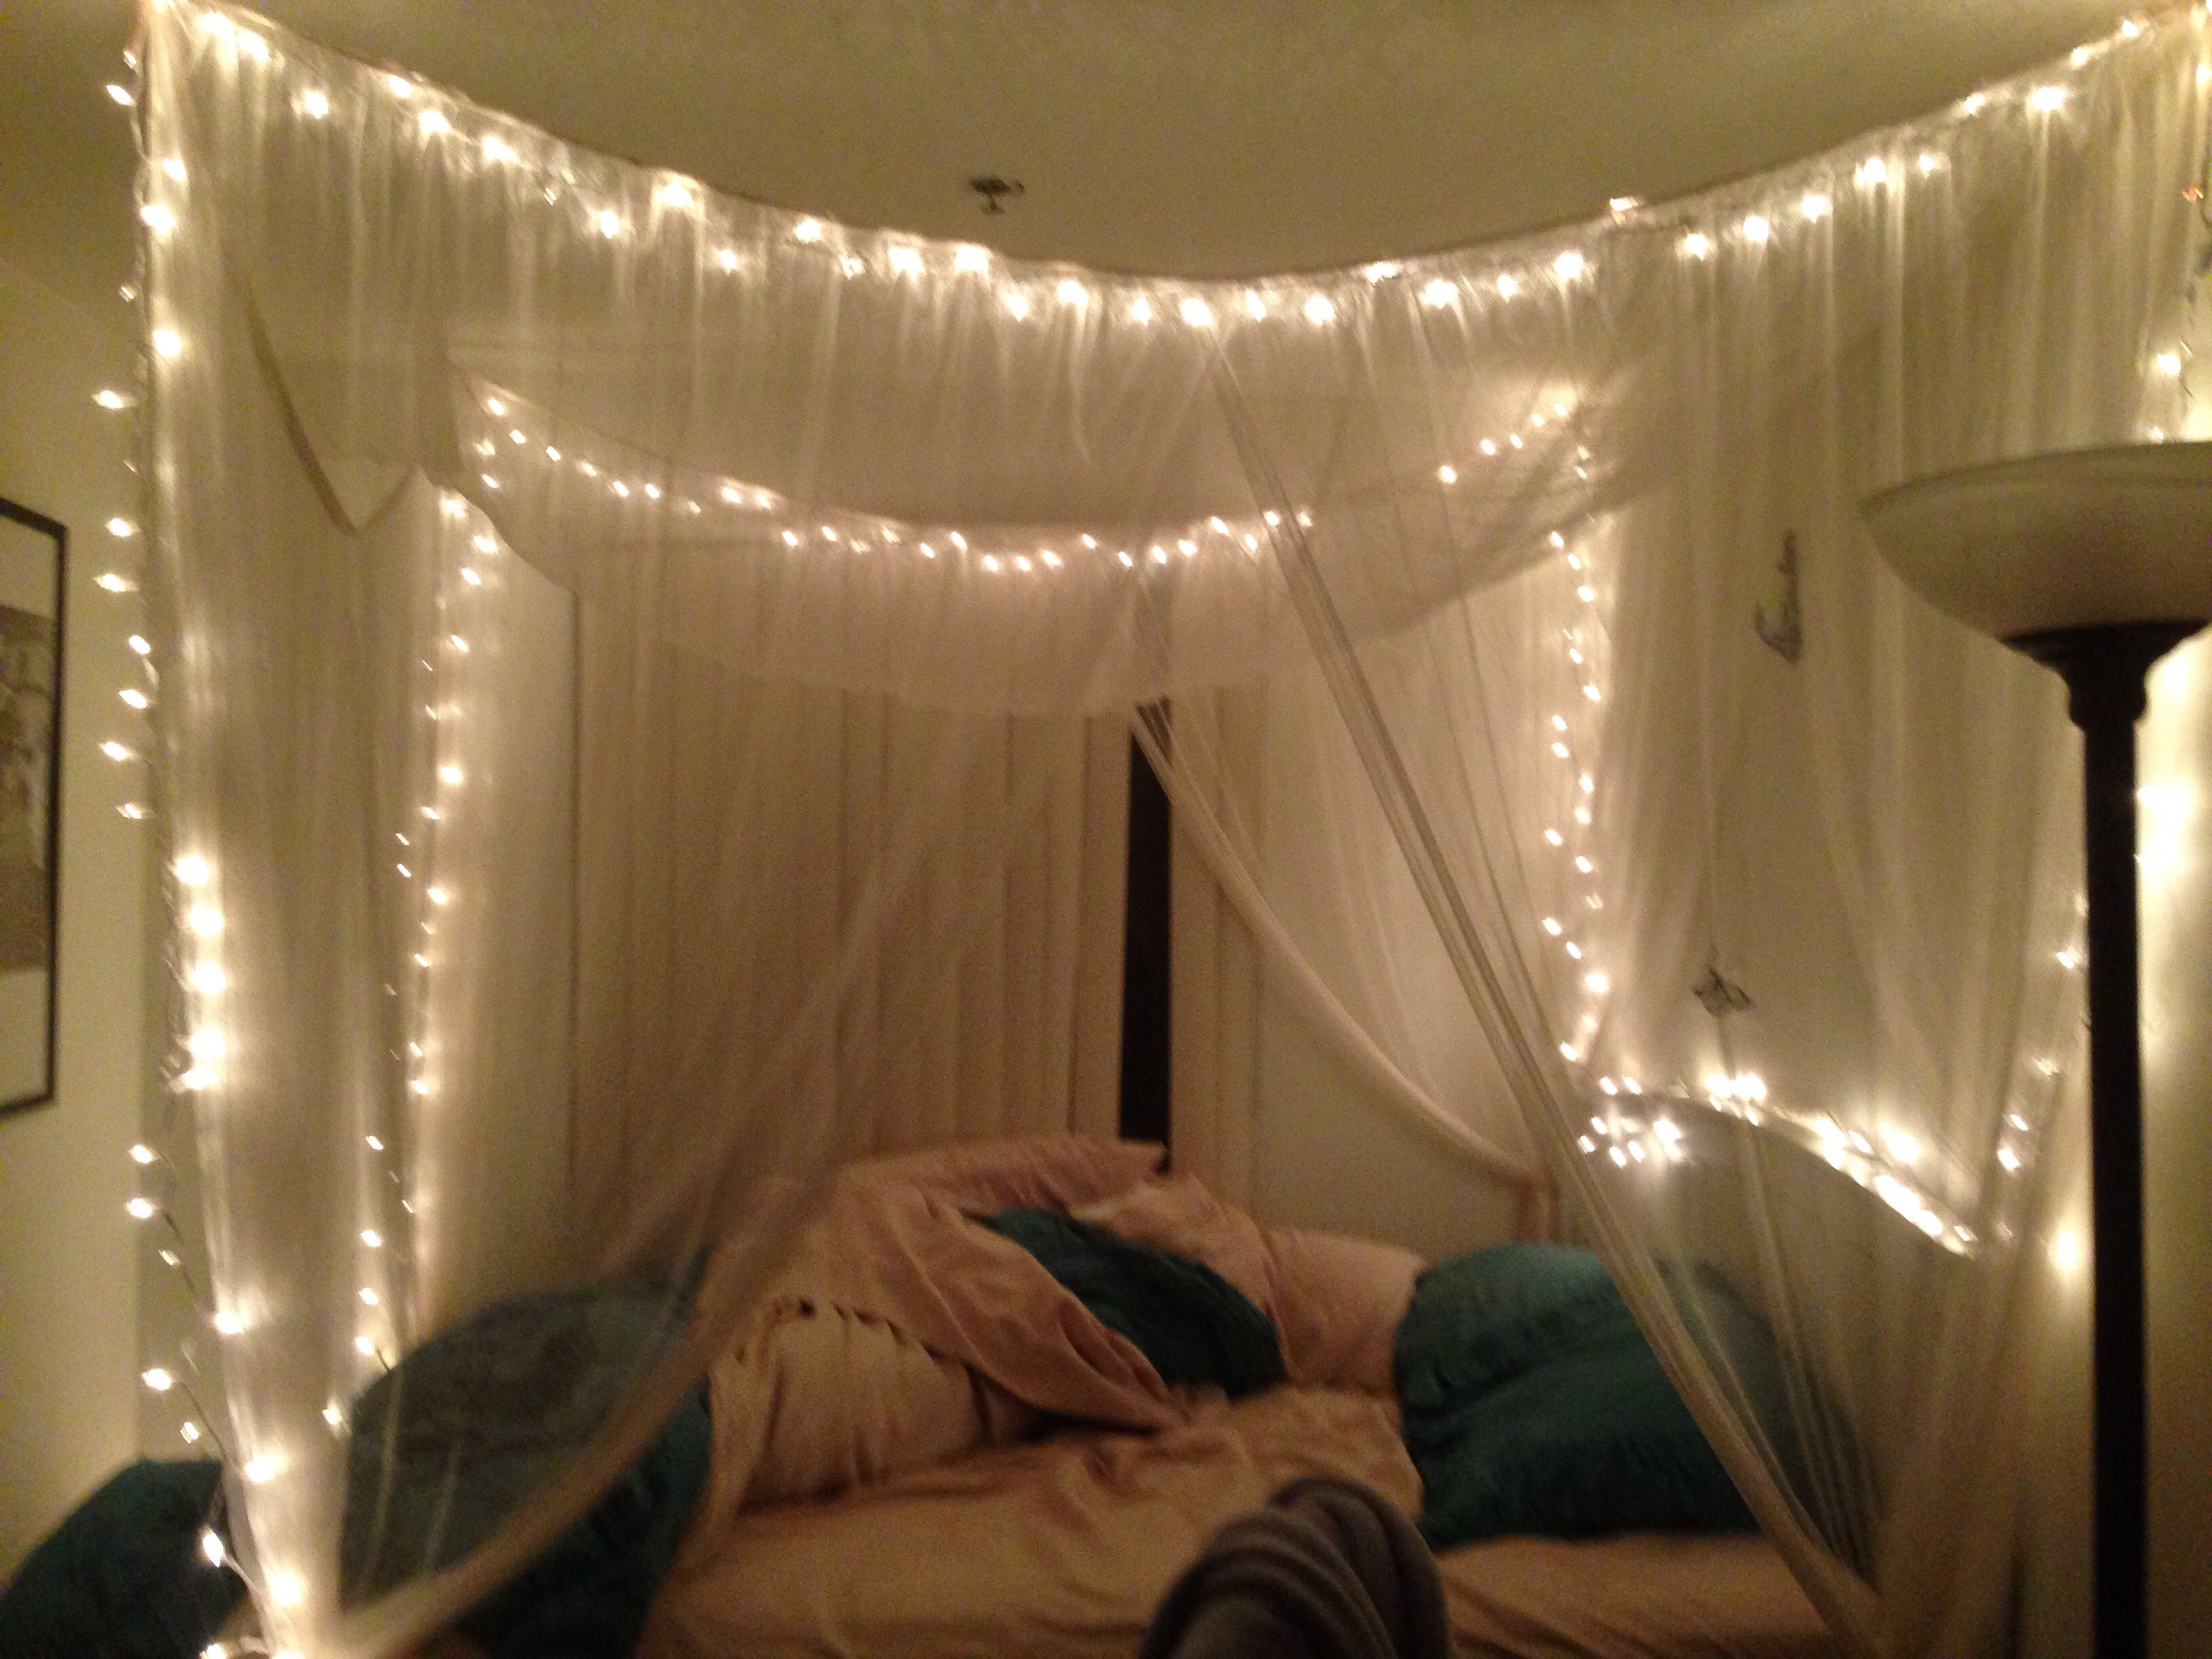 Over Bed Lights Twinkle Lights In Canopy Bed Bedroom Pinterest